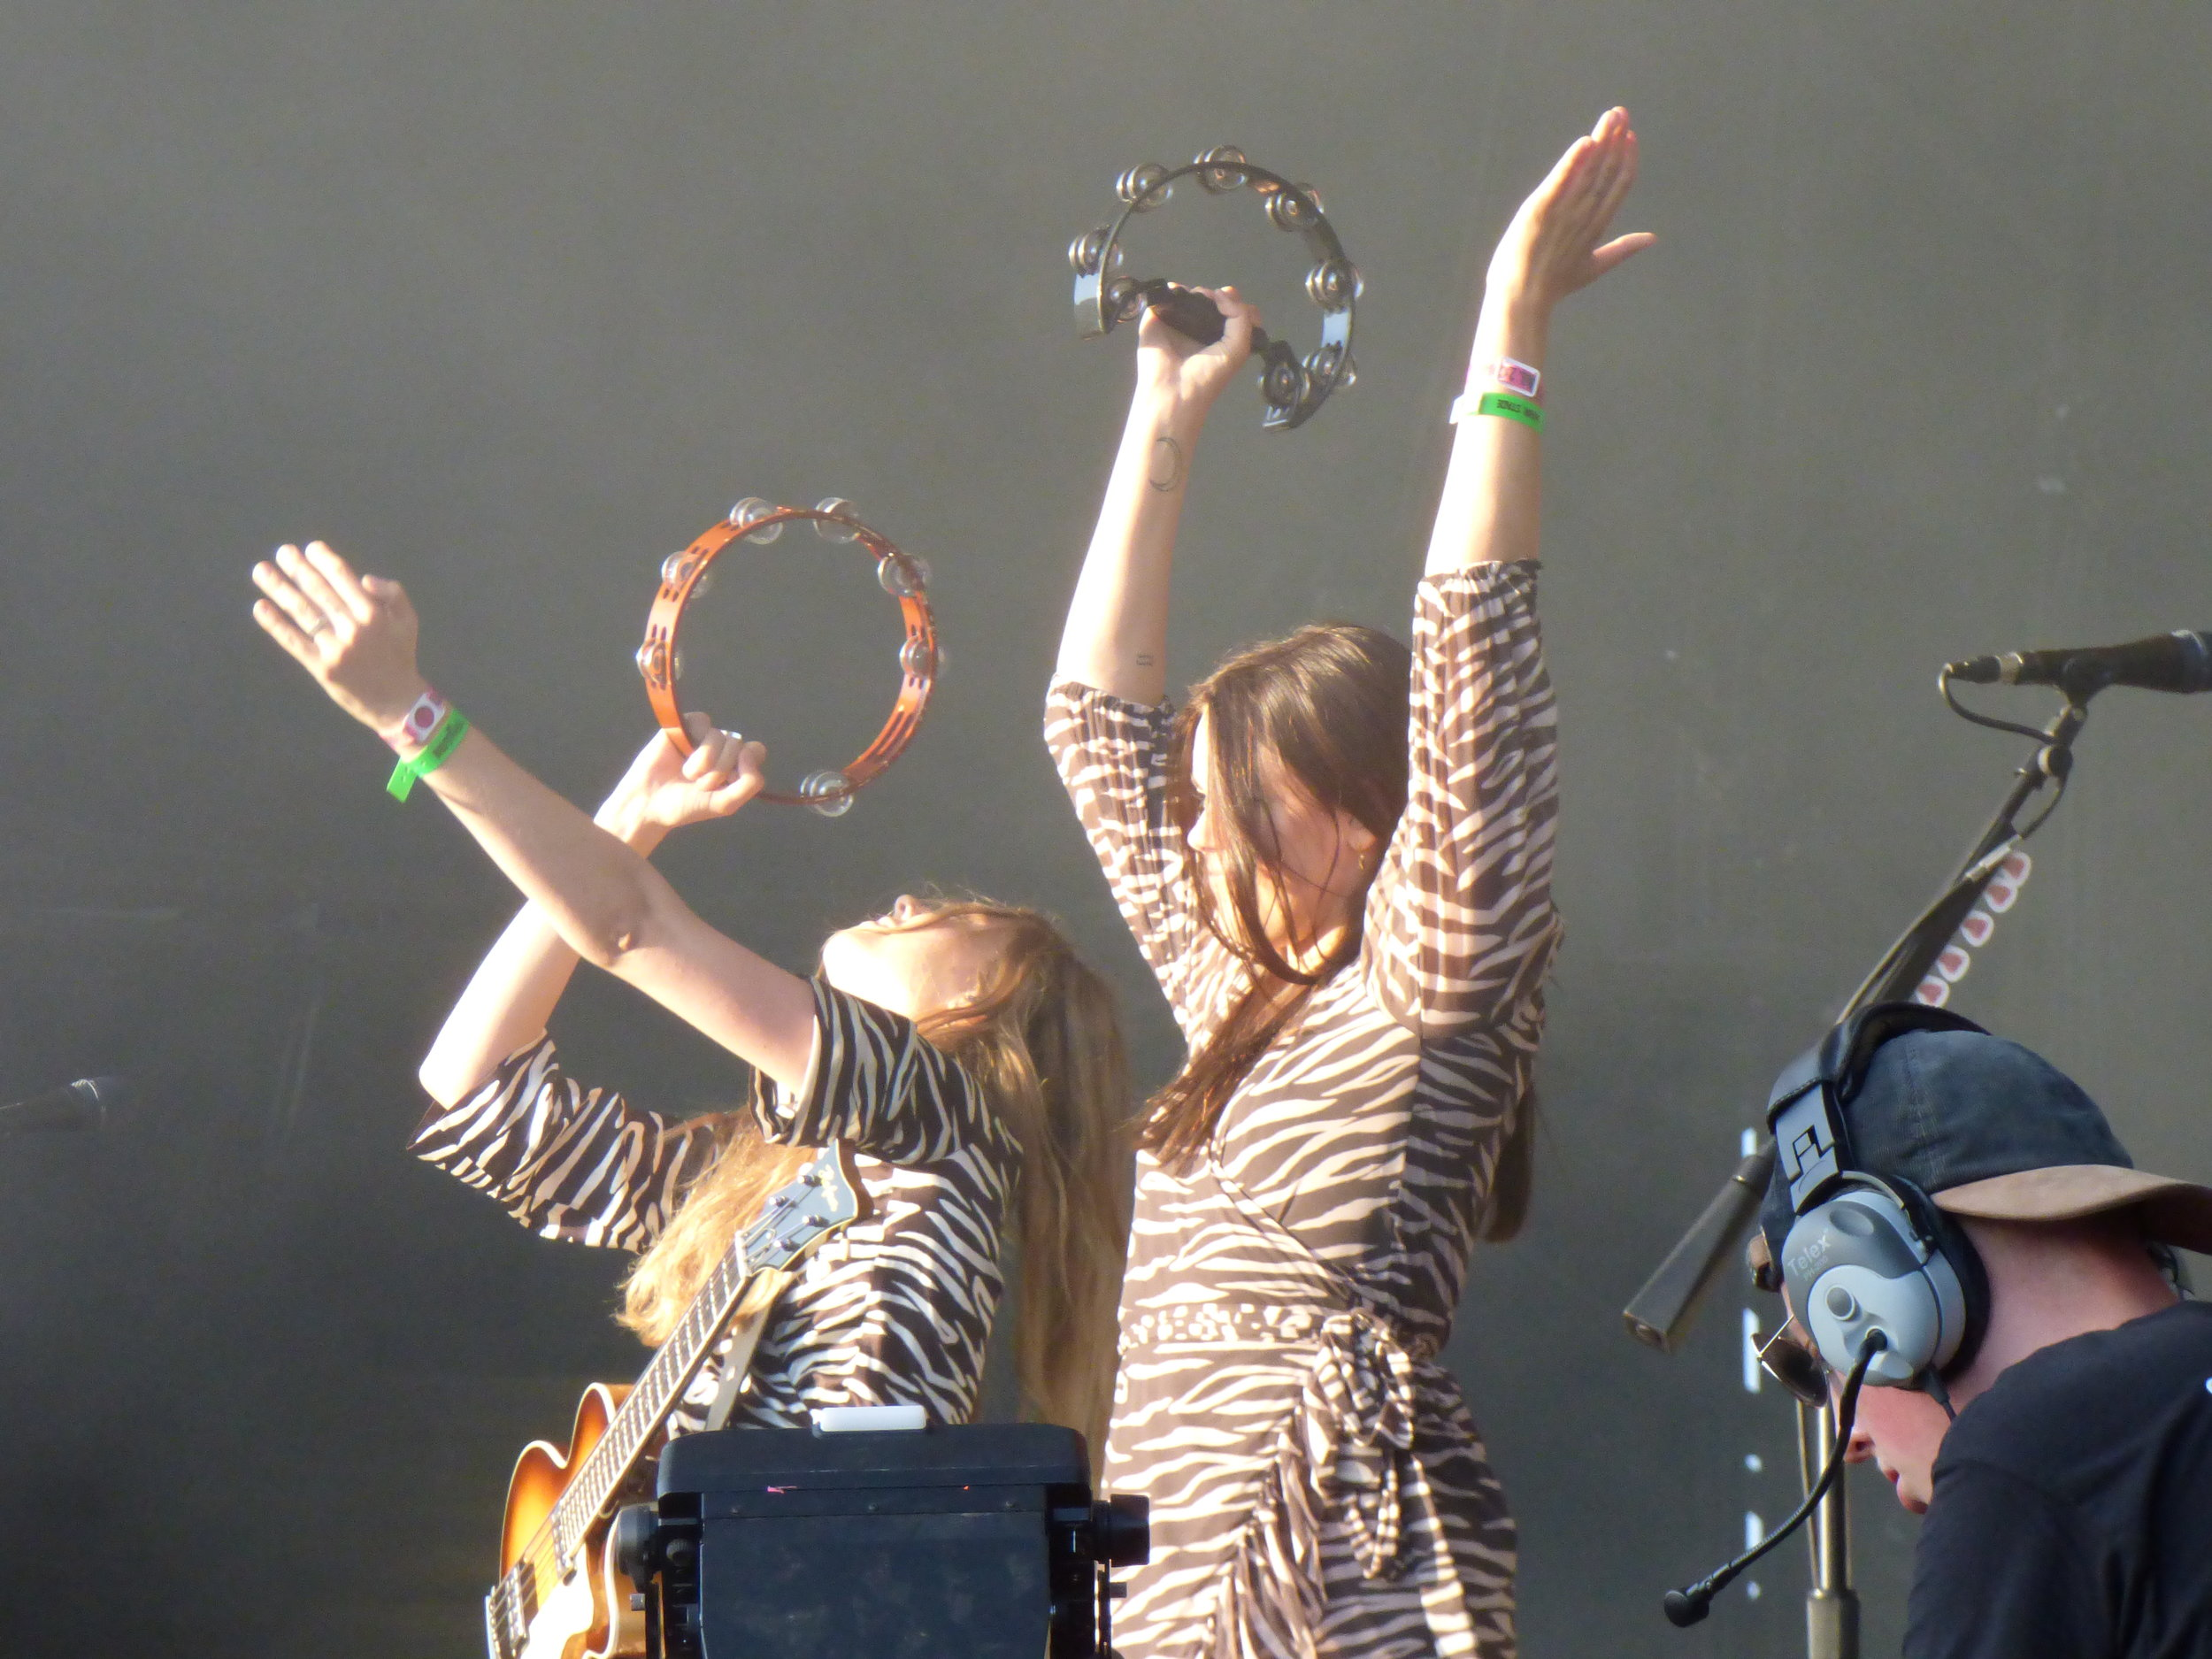 First Aid KitBestival - First Aid Kit are currently touring off of the back of one of the finest albums of their career and festival appearances this year have been kept to a minimum.Tonights performance showcased just why they deserved that 'special guest' labelling on the lineup.